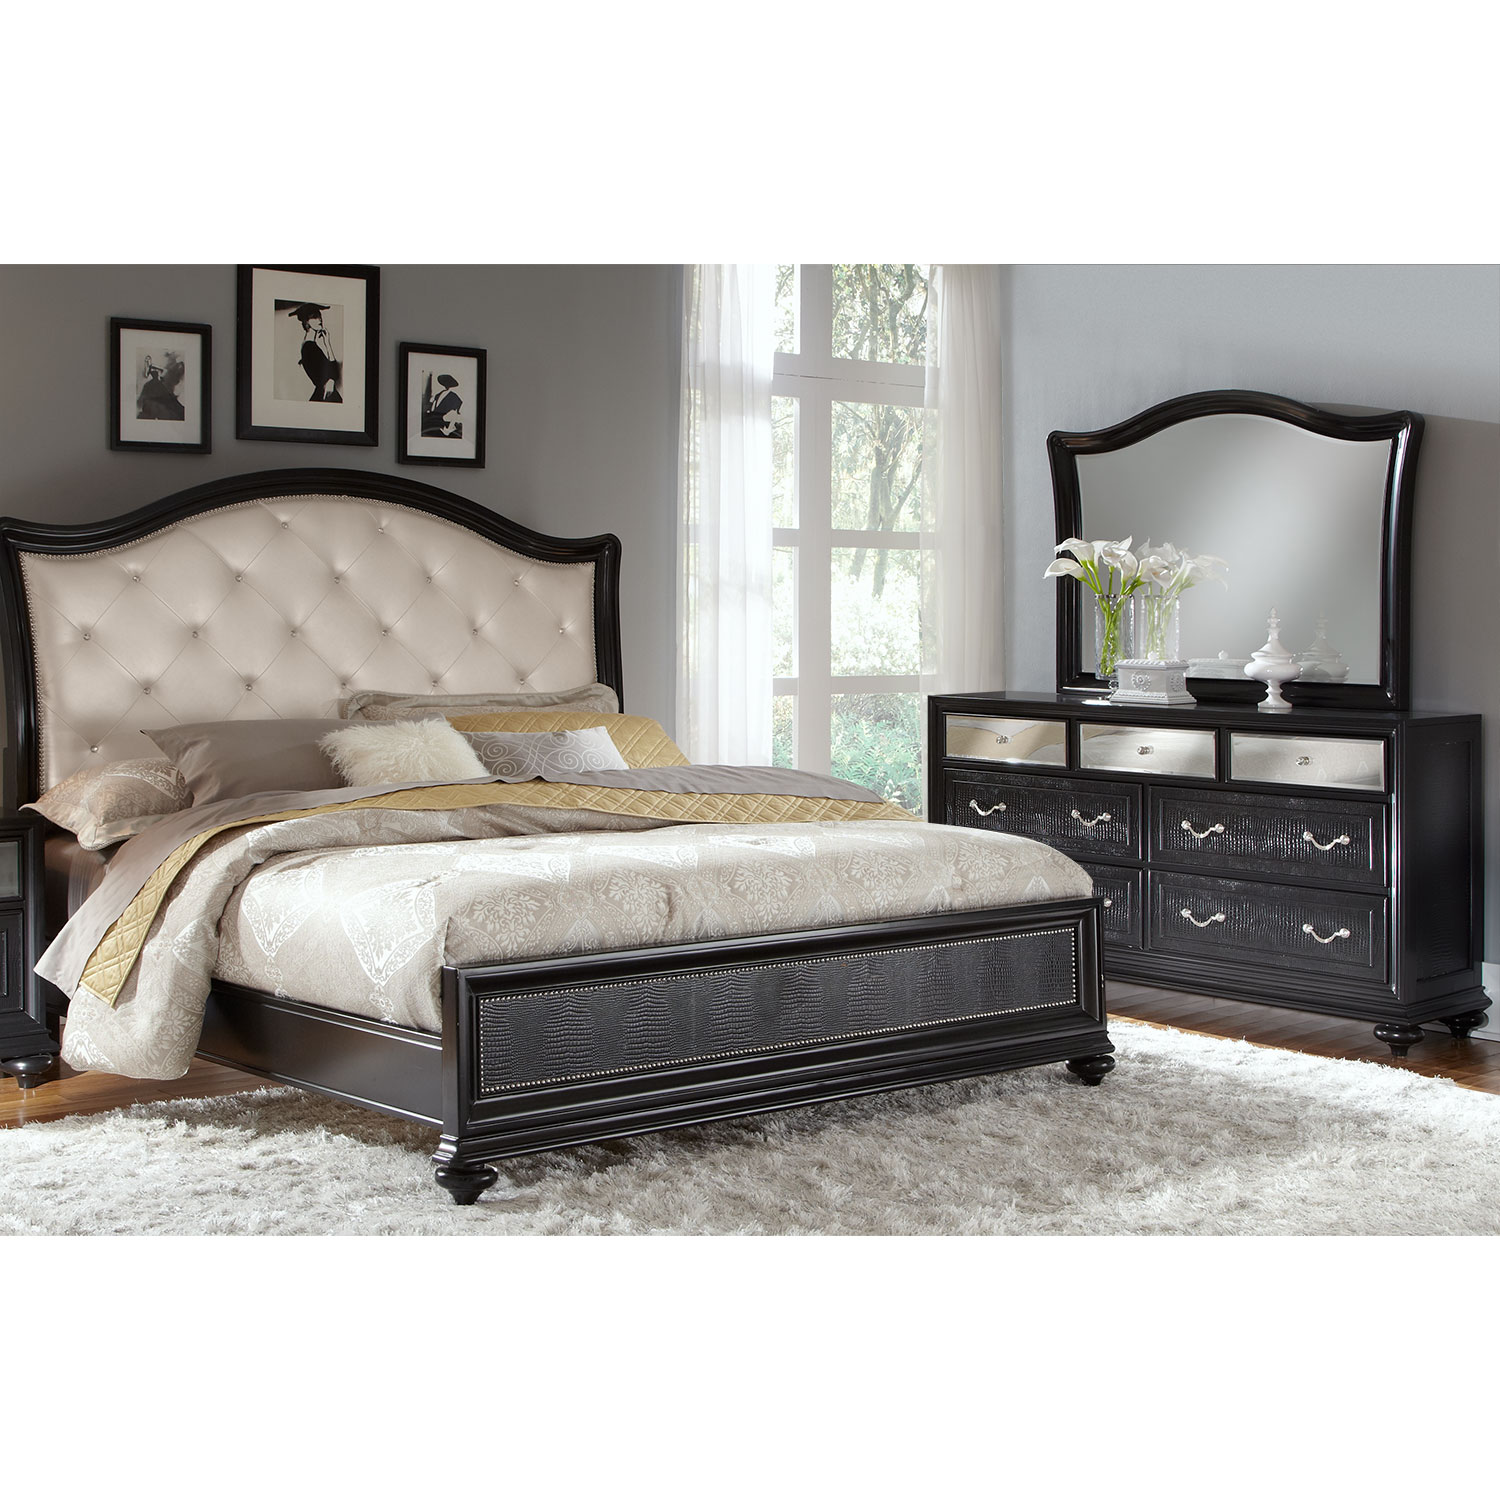 King Bedroom Sets marilyn 5-piece king bedroom set - ebony | american signature